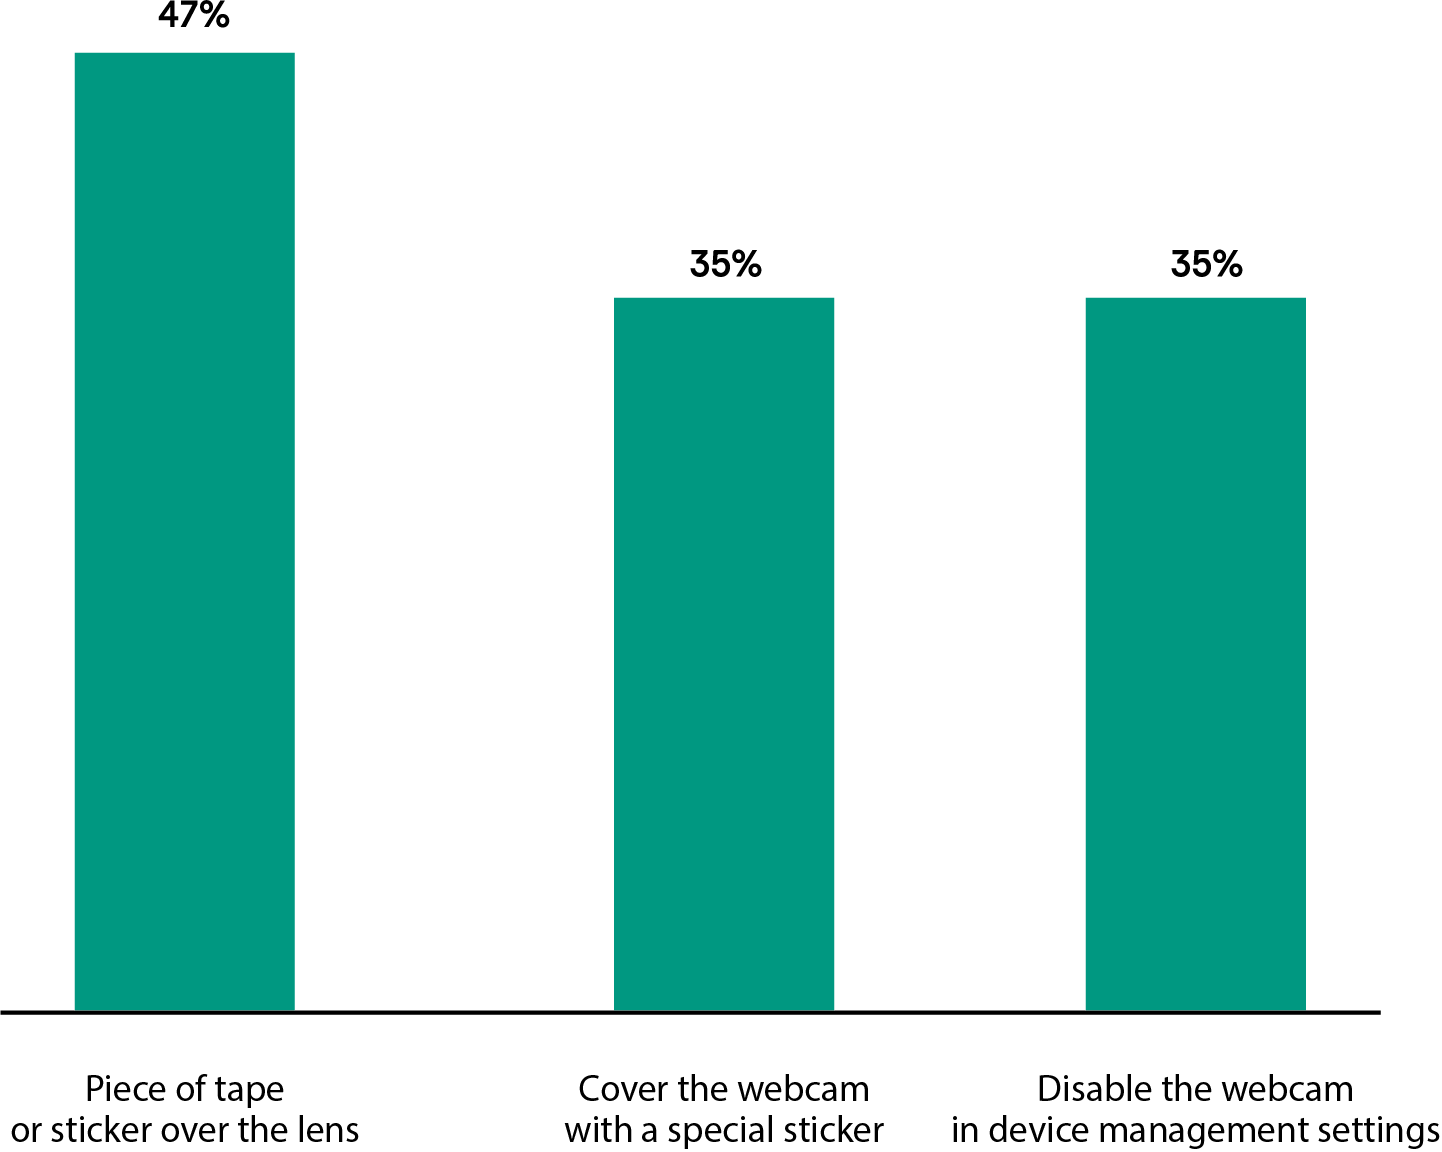 Chart 3: How do consumer protect their webcams?